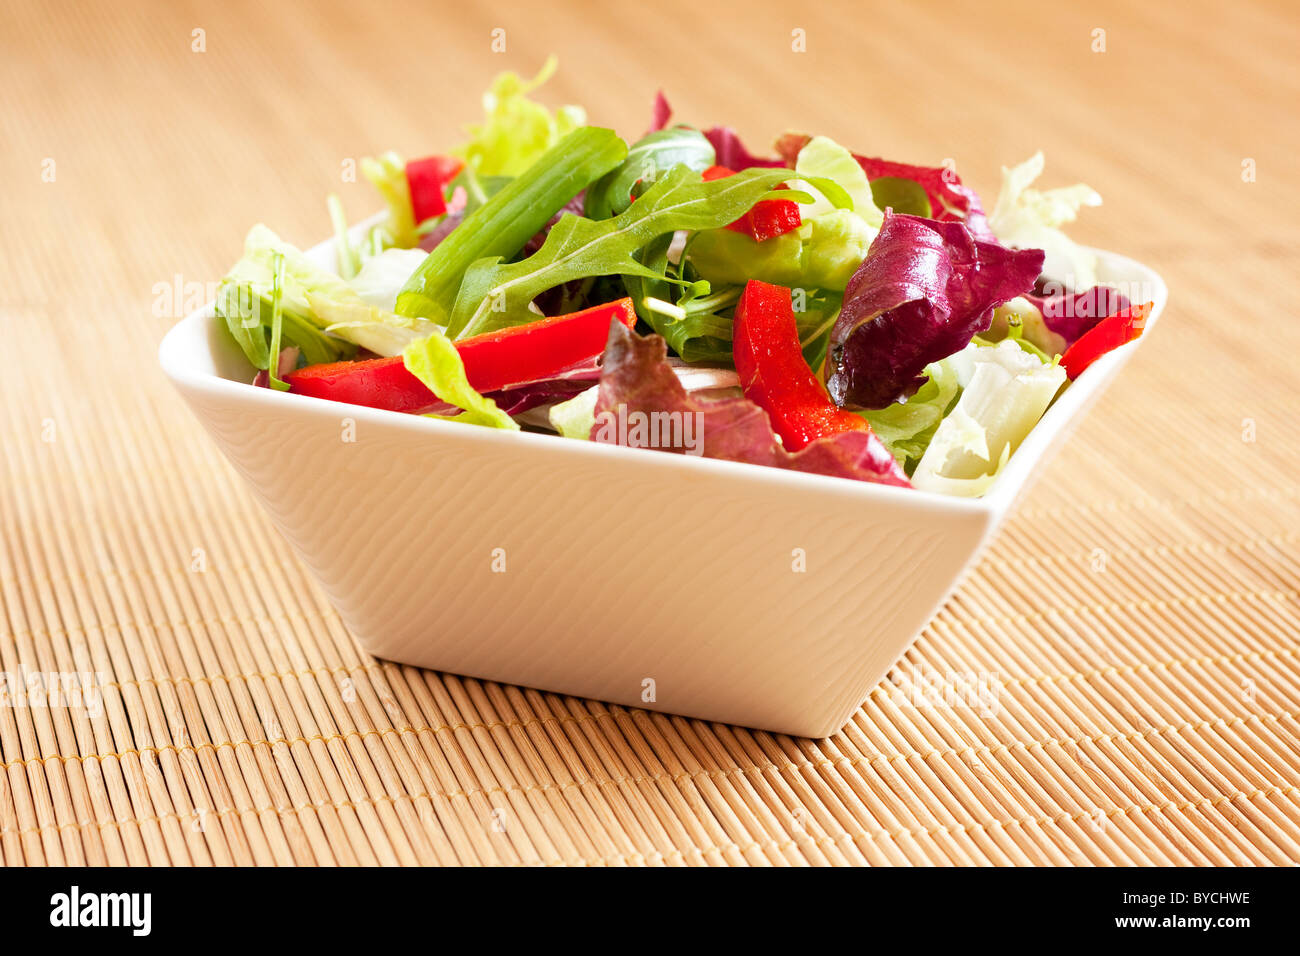 Bowl with mixed salad on bamboo place mats - Stock Image